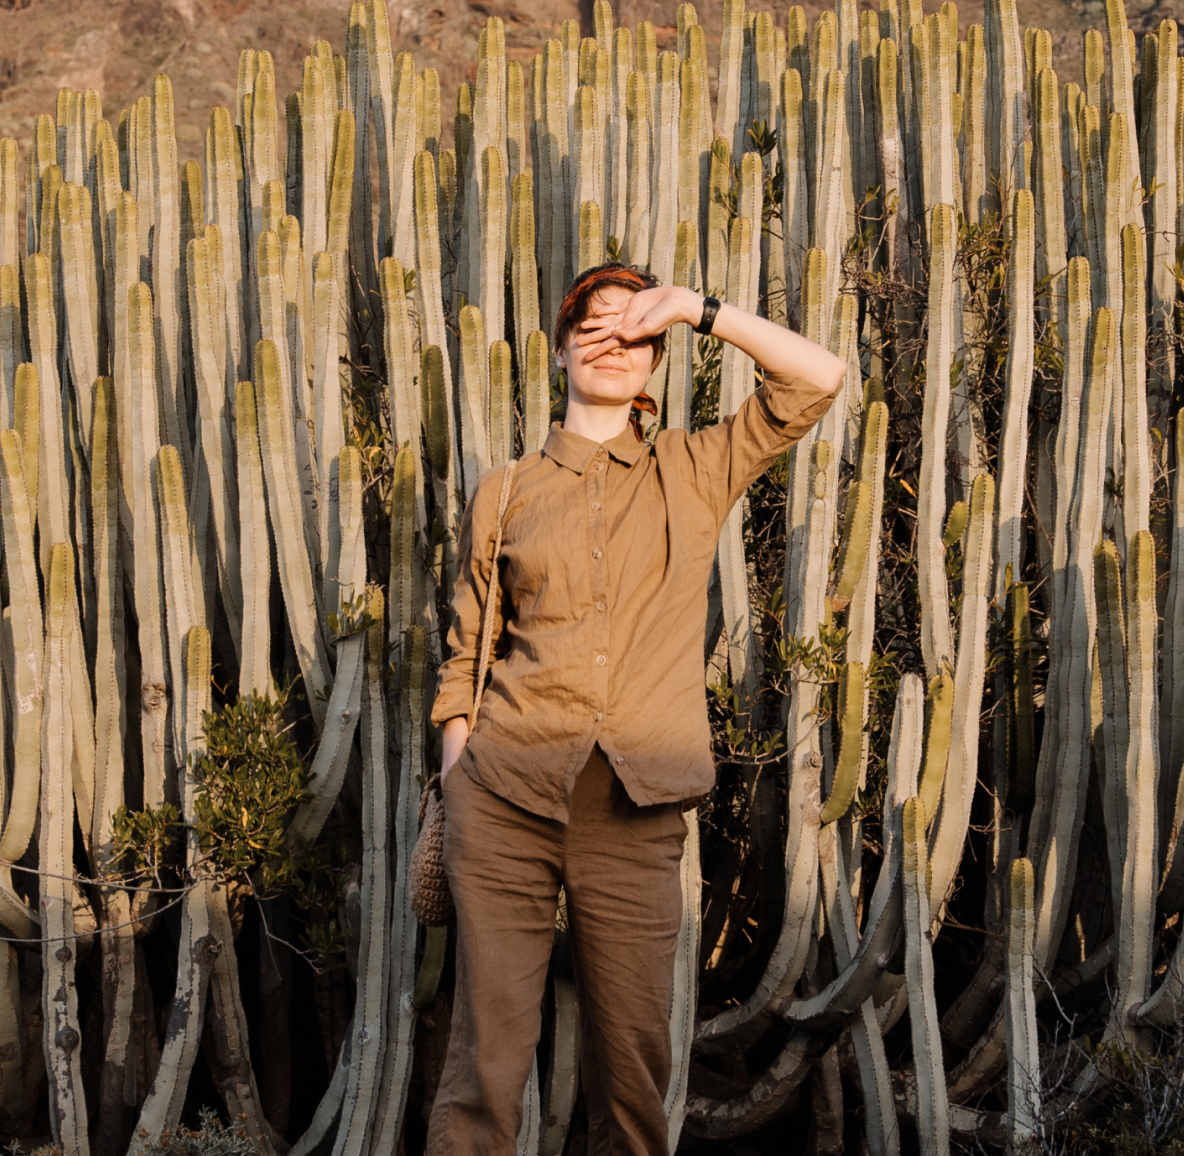 A White woman in a casual beige outfit, shielding her eyes from the sun in front of thin cactus plants